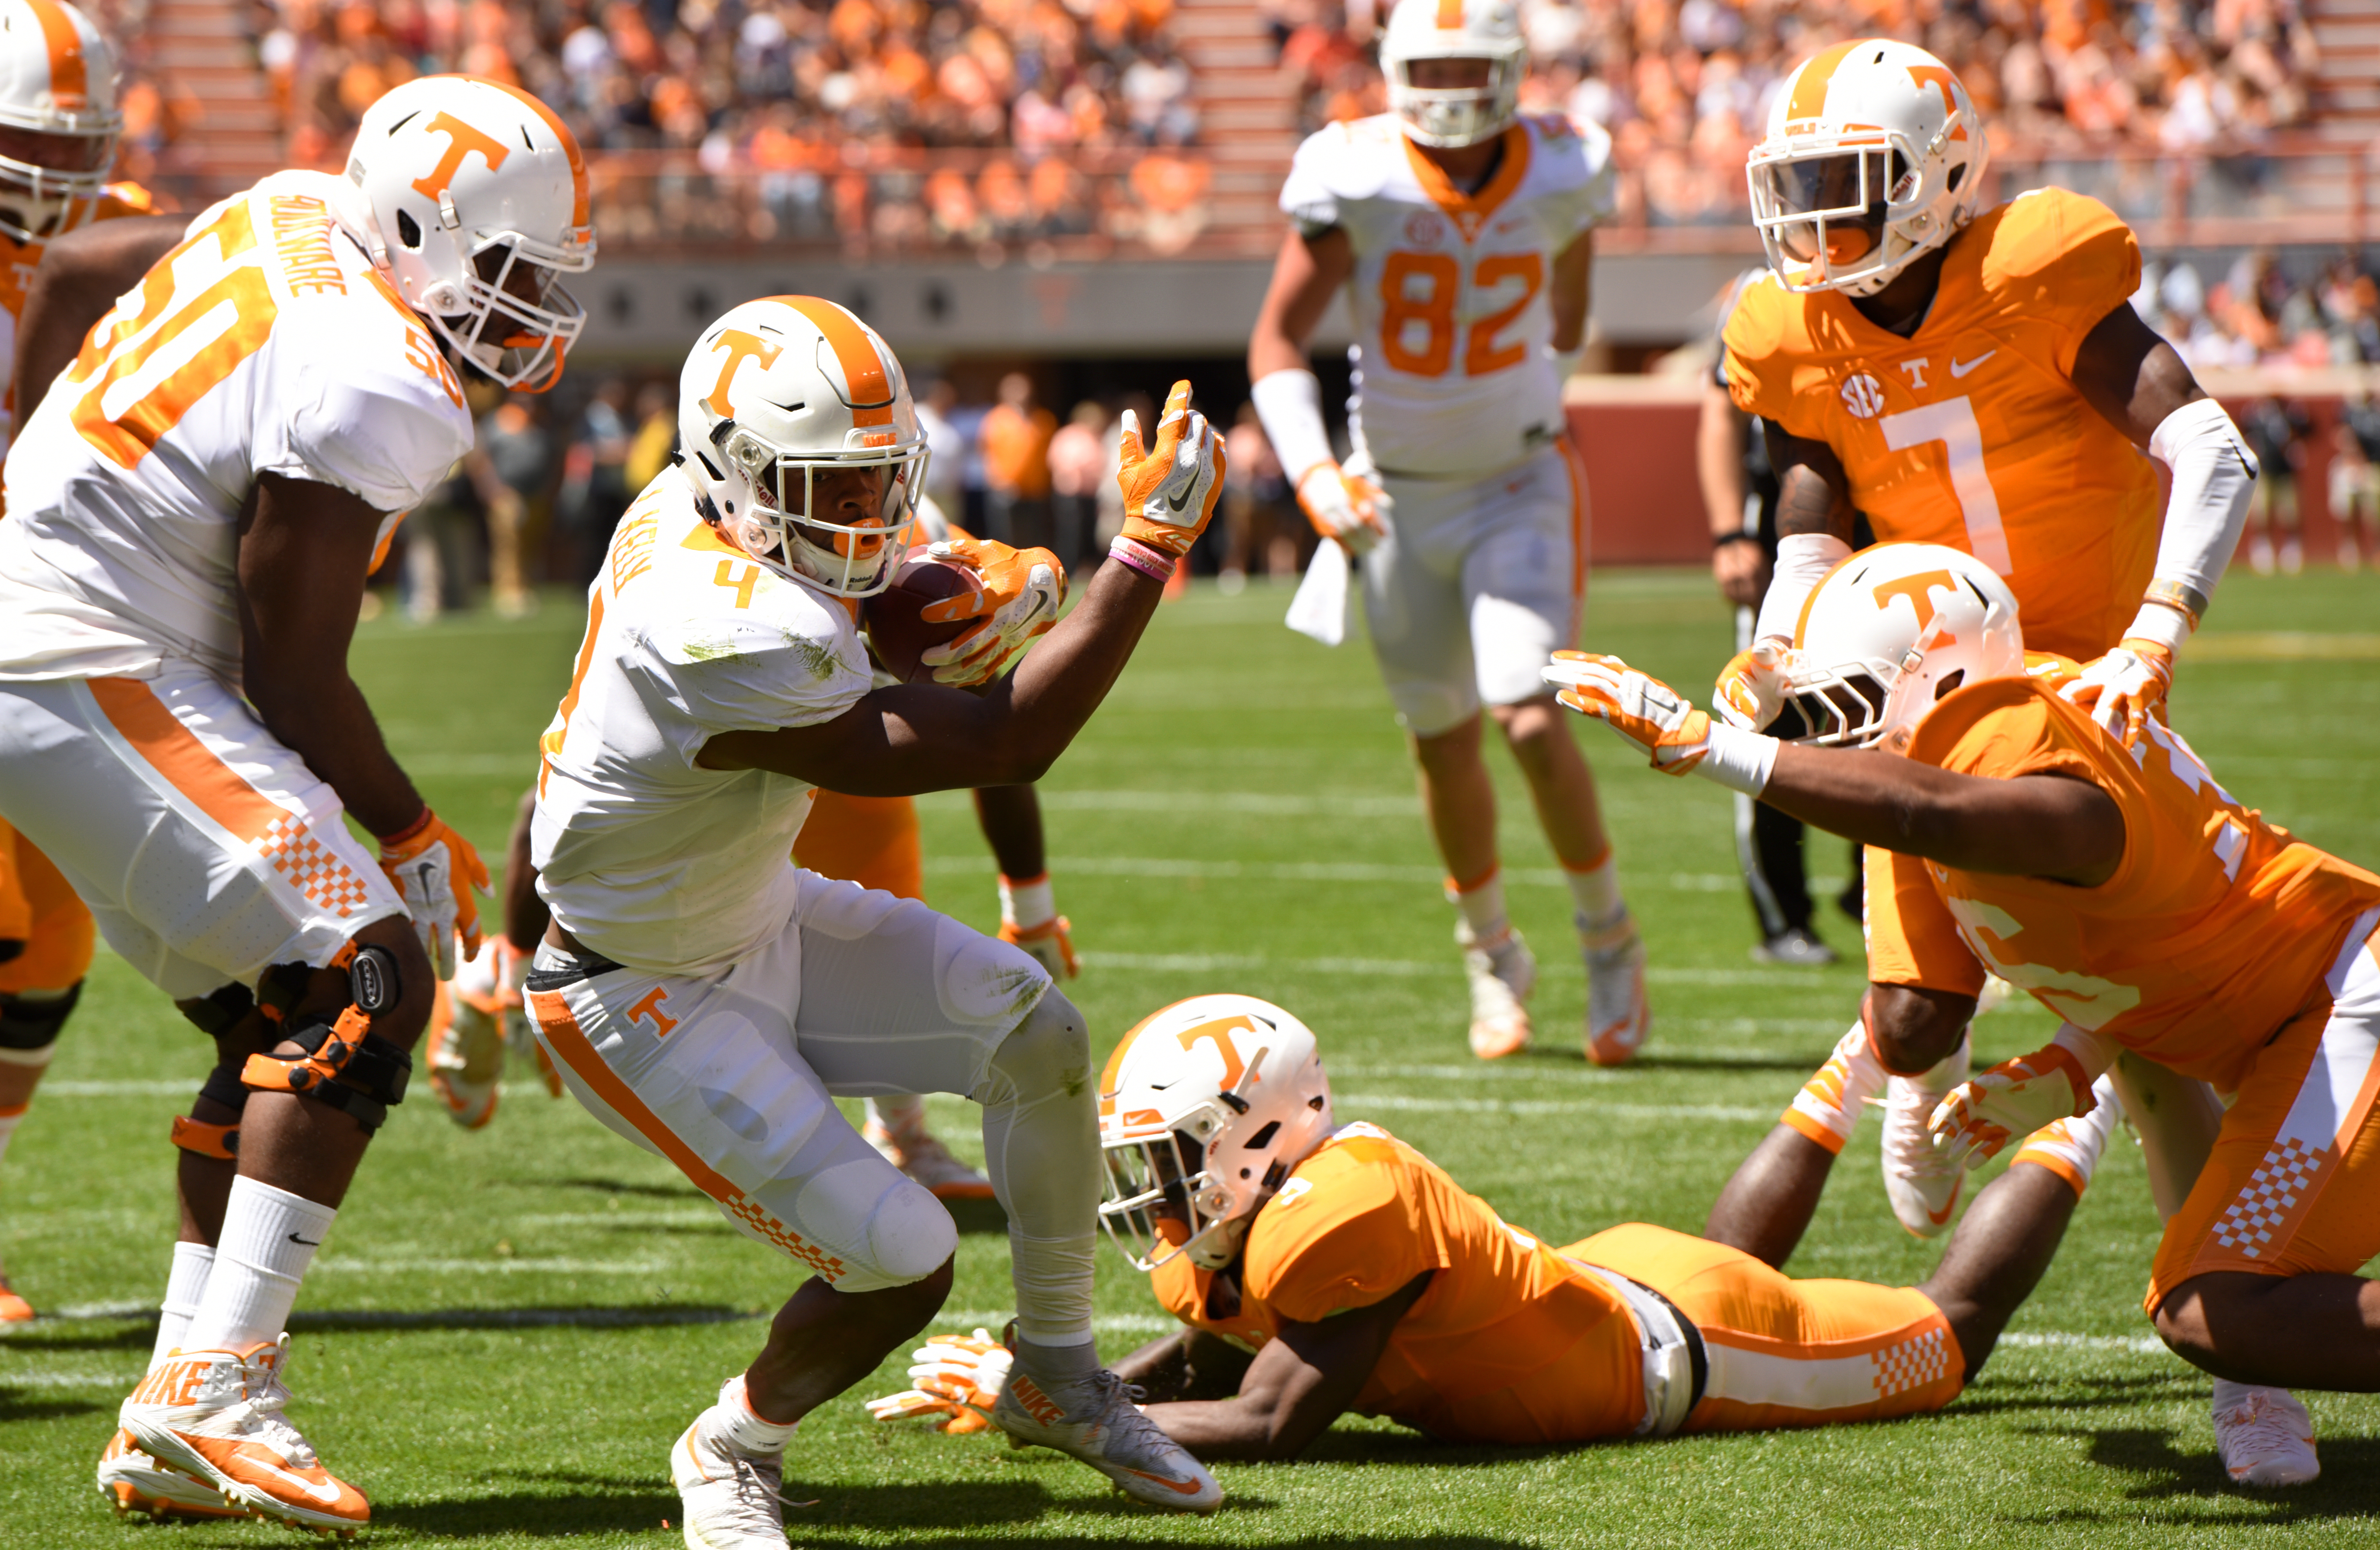 Tennessee's John Kelly scores a touchdown during an NCAA college football spring game in Knoxville, Tenn., Saturday, April 16, 2016. (Michael Patrick/Knoxville News Sentinel via AP) MANDATORY CREDIT